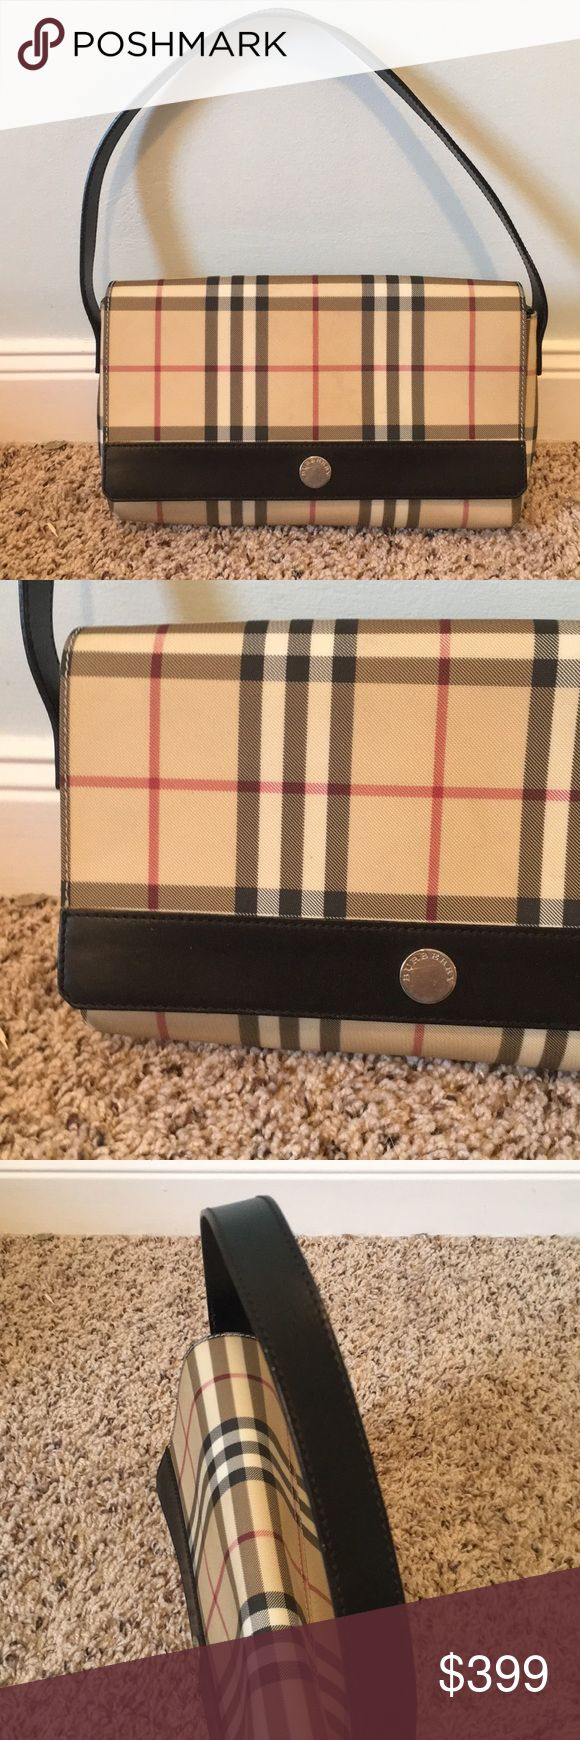 "BURBERRY nova check Shoulder Bag Authentic Berberry nova check bag with black leather accent in good used condition, silver hardware. Strap is perfect, hardware is functional and smooth. Small pen stain on the interior flap of the bag please see detailed photo for close up. 11 1/2"" x 6"" with 7 inch strap drop. CDH Burberry Bags Shoulder Bags"